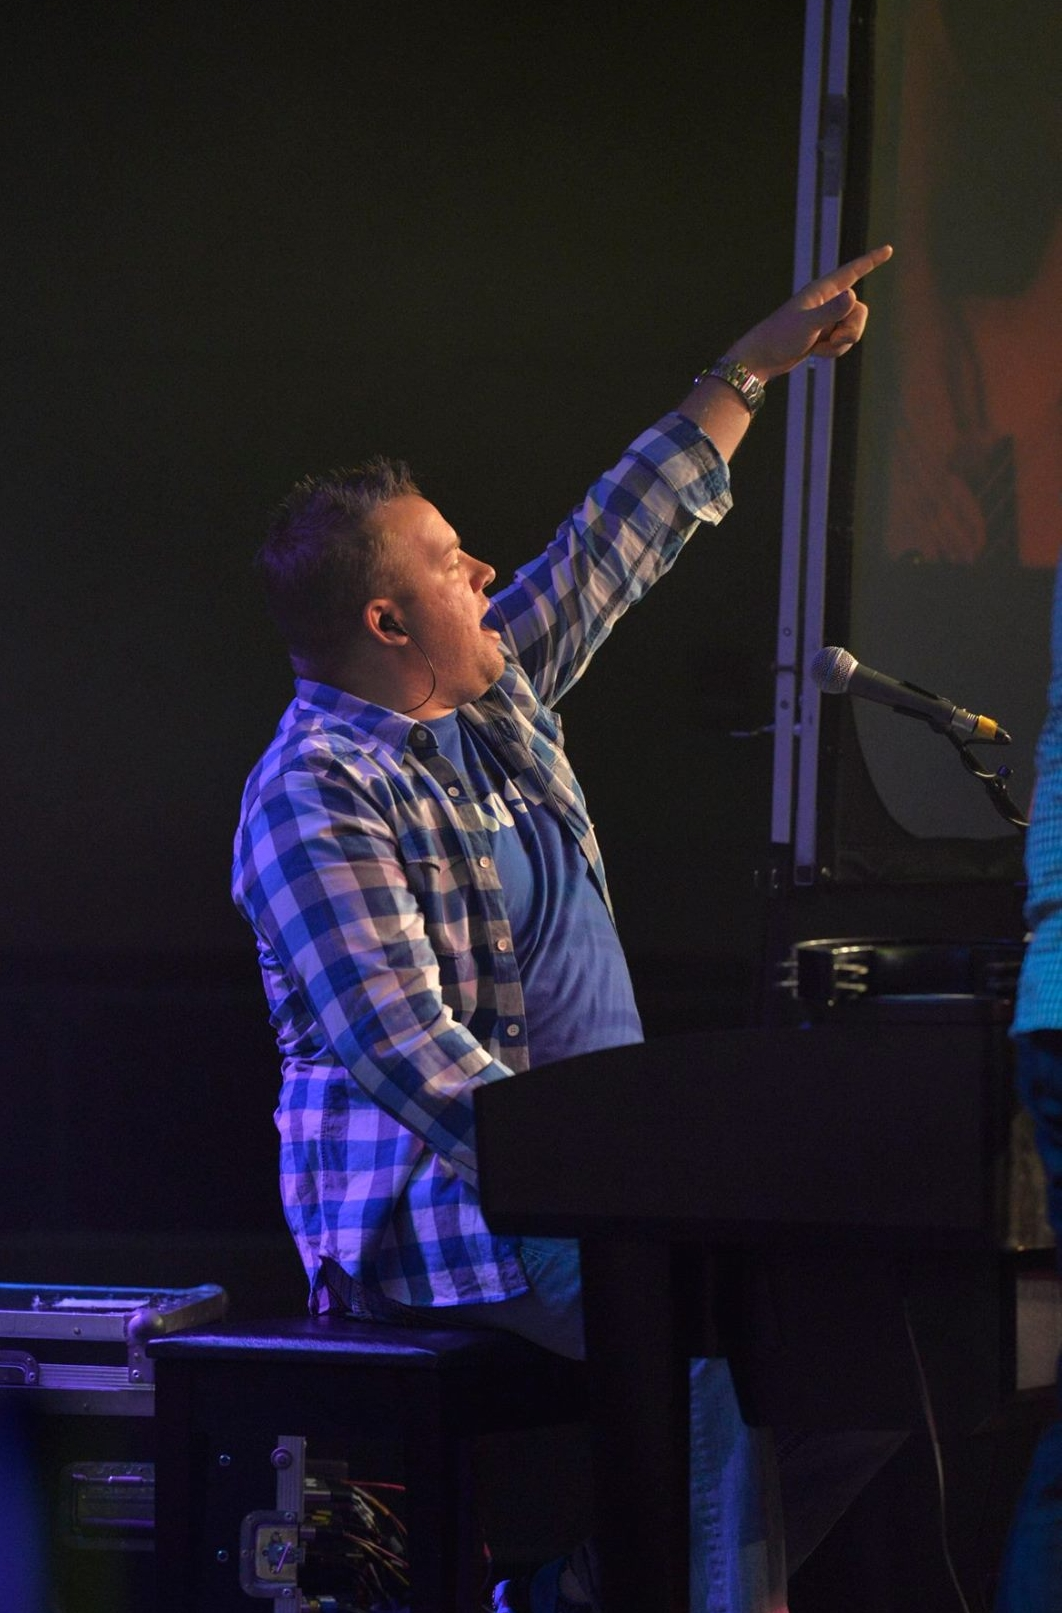 Matt Endreson / Keys, Vocals   My name is Matt Endreson, and I am blessed to play in this band with amazing musicians and Christians as well. I am 37 years old, married to my beautiful wife for 15 years, and have two amazing daughters. I also am a high school choir director, work with music within a church, and play with this group, Red River Worship, that has a mission to uplift faith with music. One could say that music is a huge part of my everyday life! Playing keys with this band has heightened my faith and love of Christian music. The music we have and play, can speak to the soul and heart on what life is about. You will not find a better group of guys that love to worship and provide music ministry to all that will listen.